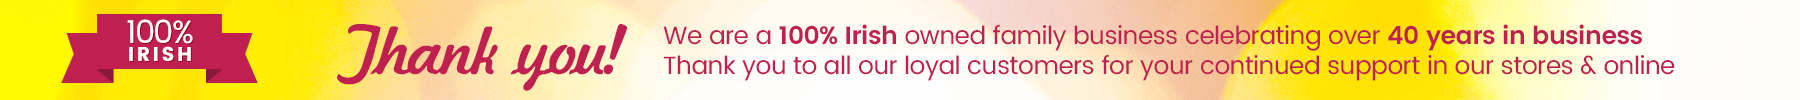 We are a 100% Irish owned family business celebrating over 40 years in business. Thank you to all our loyal customers for your continued support in our stores & online